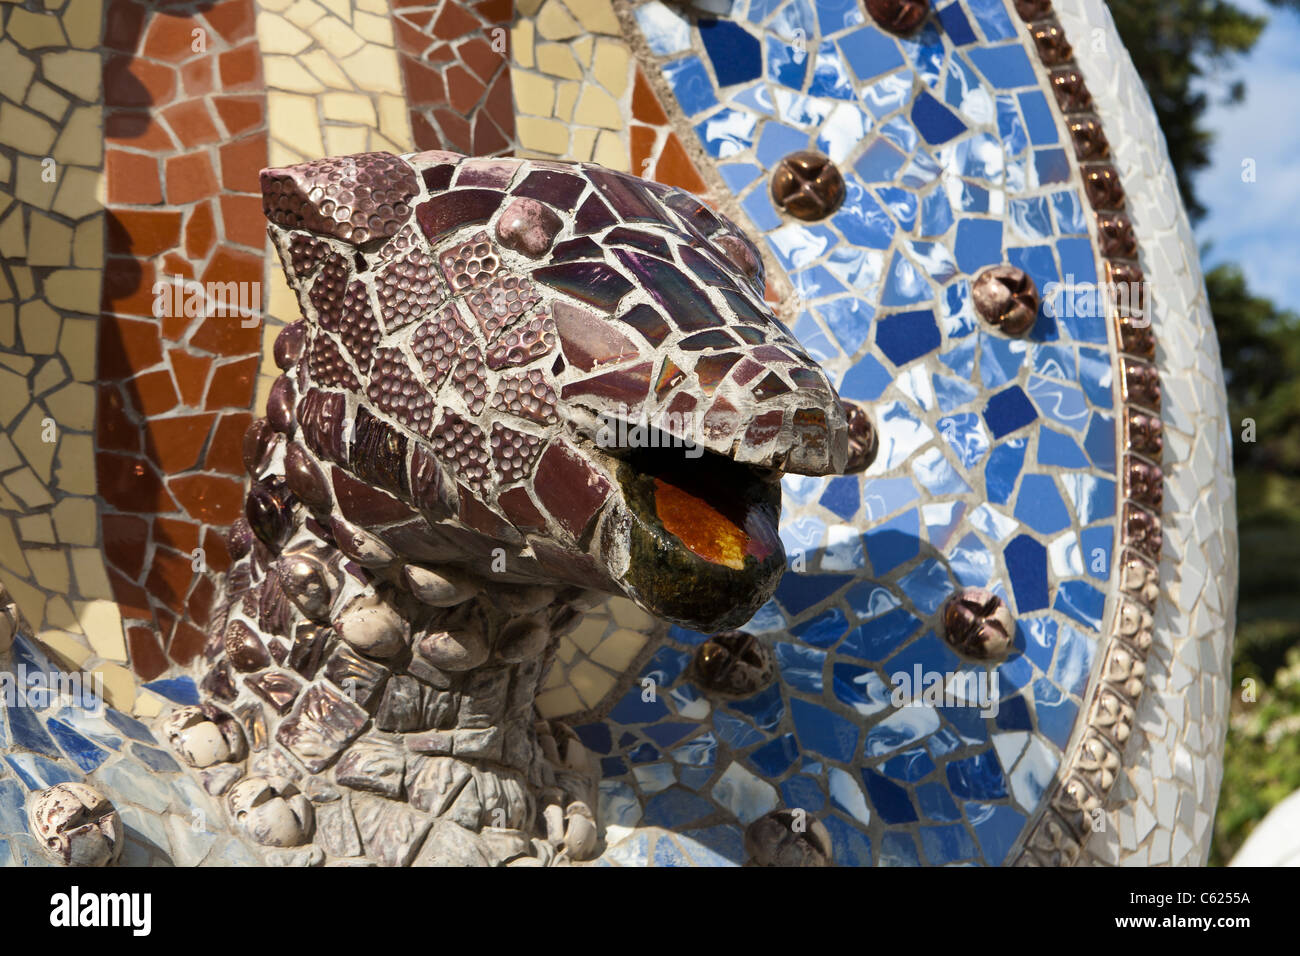 Park Güell is a public park system composed of gardens and architectonic elements located on Carmel Hill, in - Stock Image